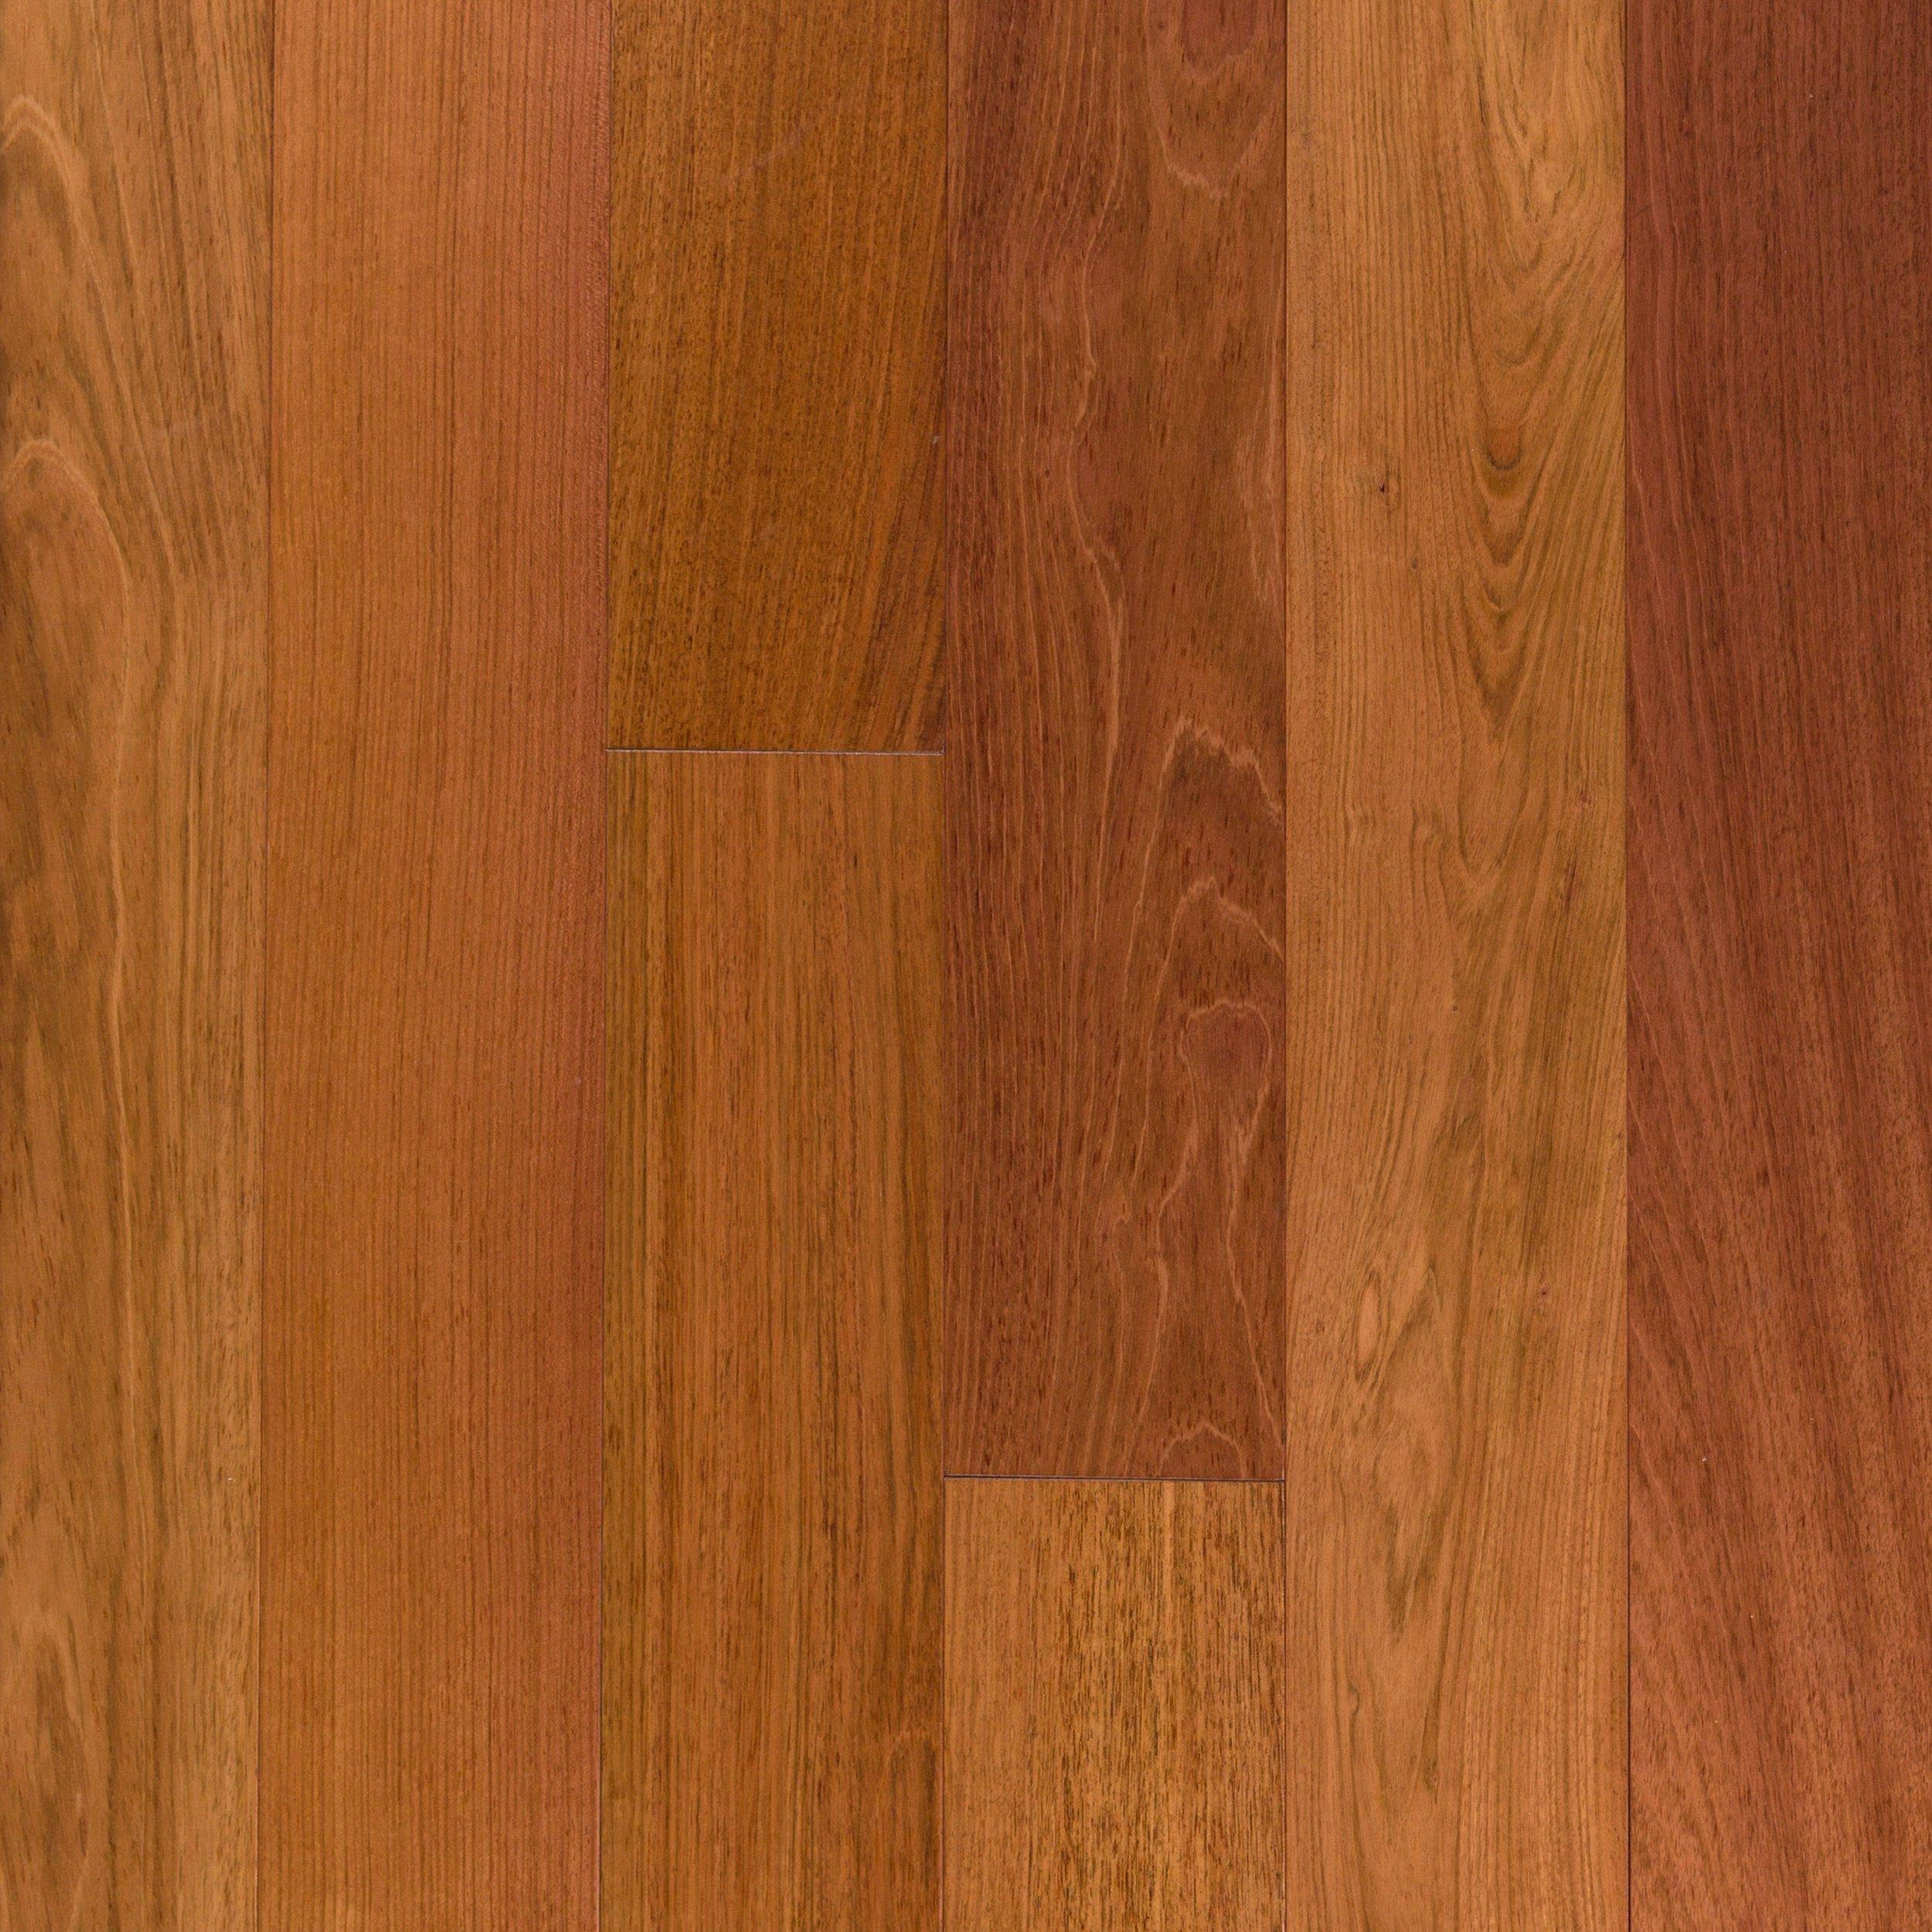 Natural Brazilian Cherry Smooth Solid Hardwood Products In